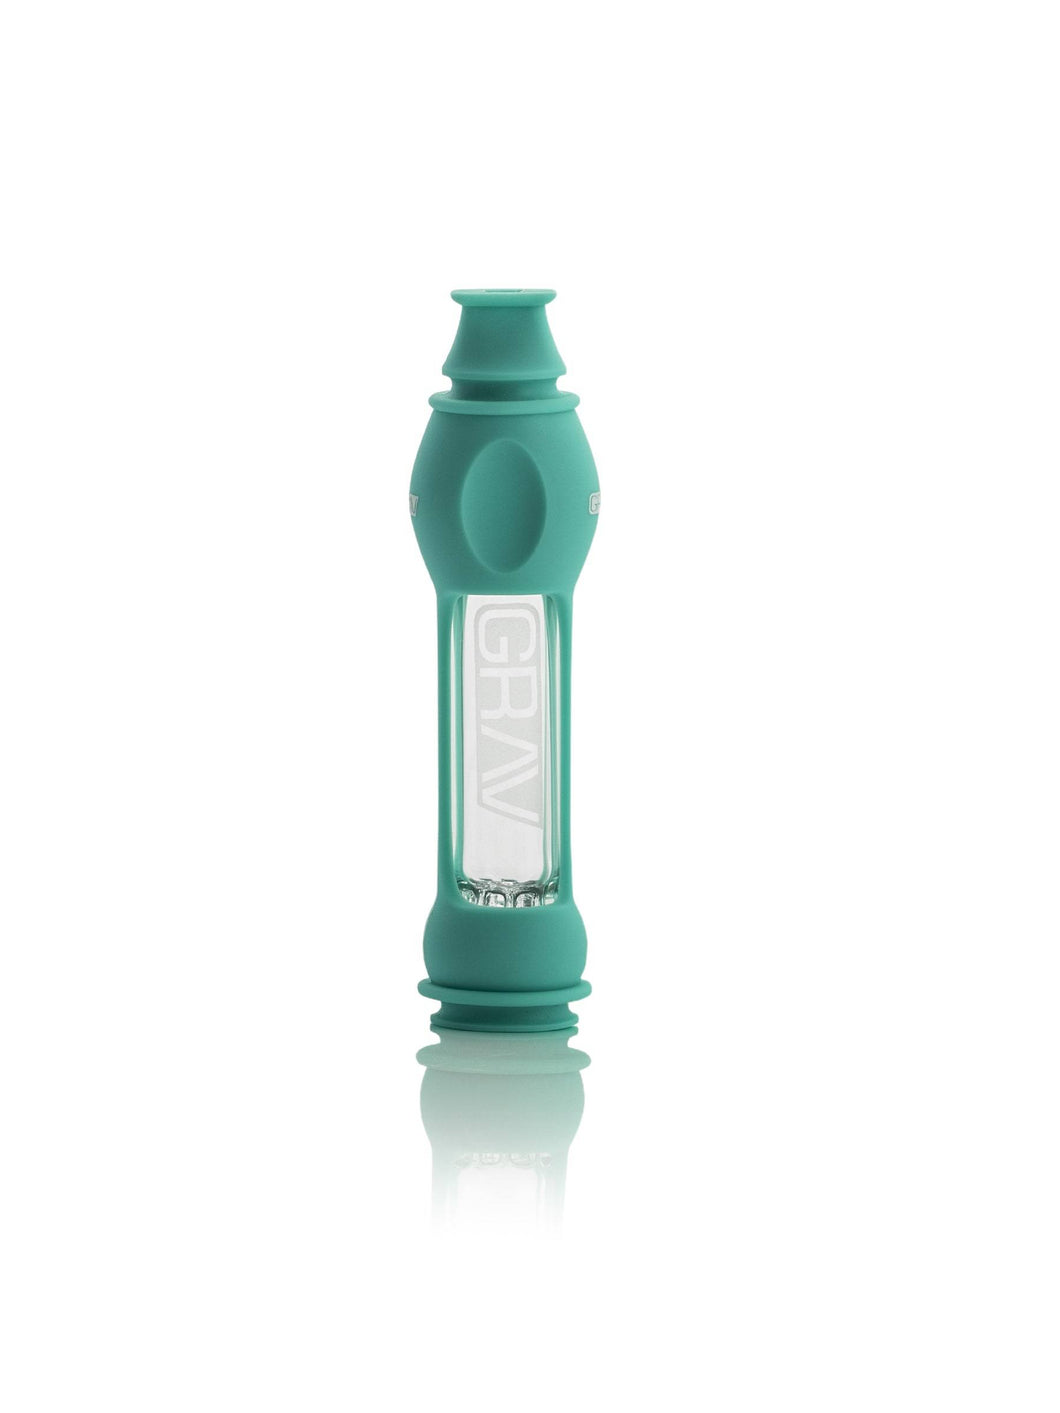 Grav - 16mm Octo-Taster with Silicone Skin - Teal